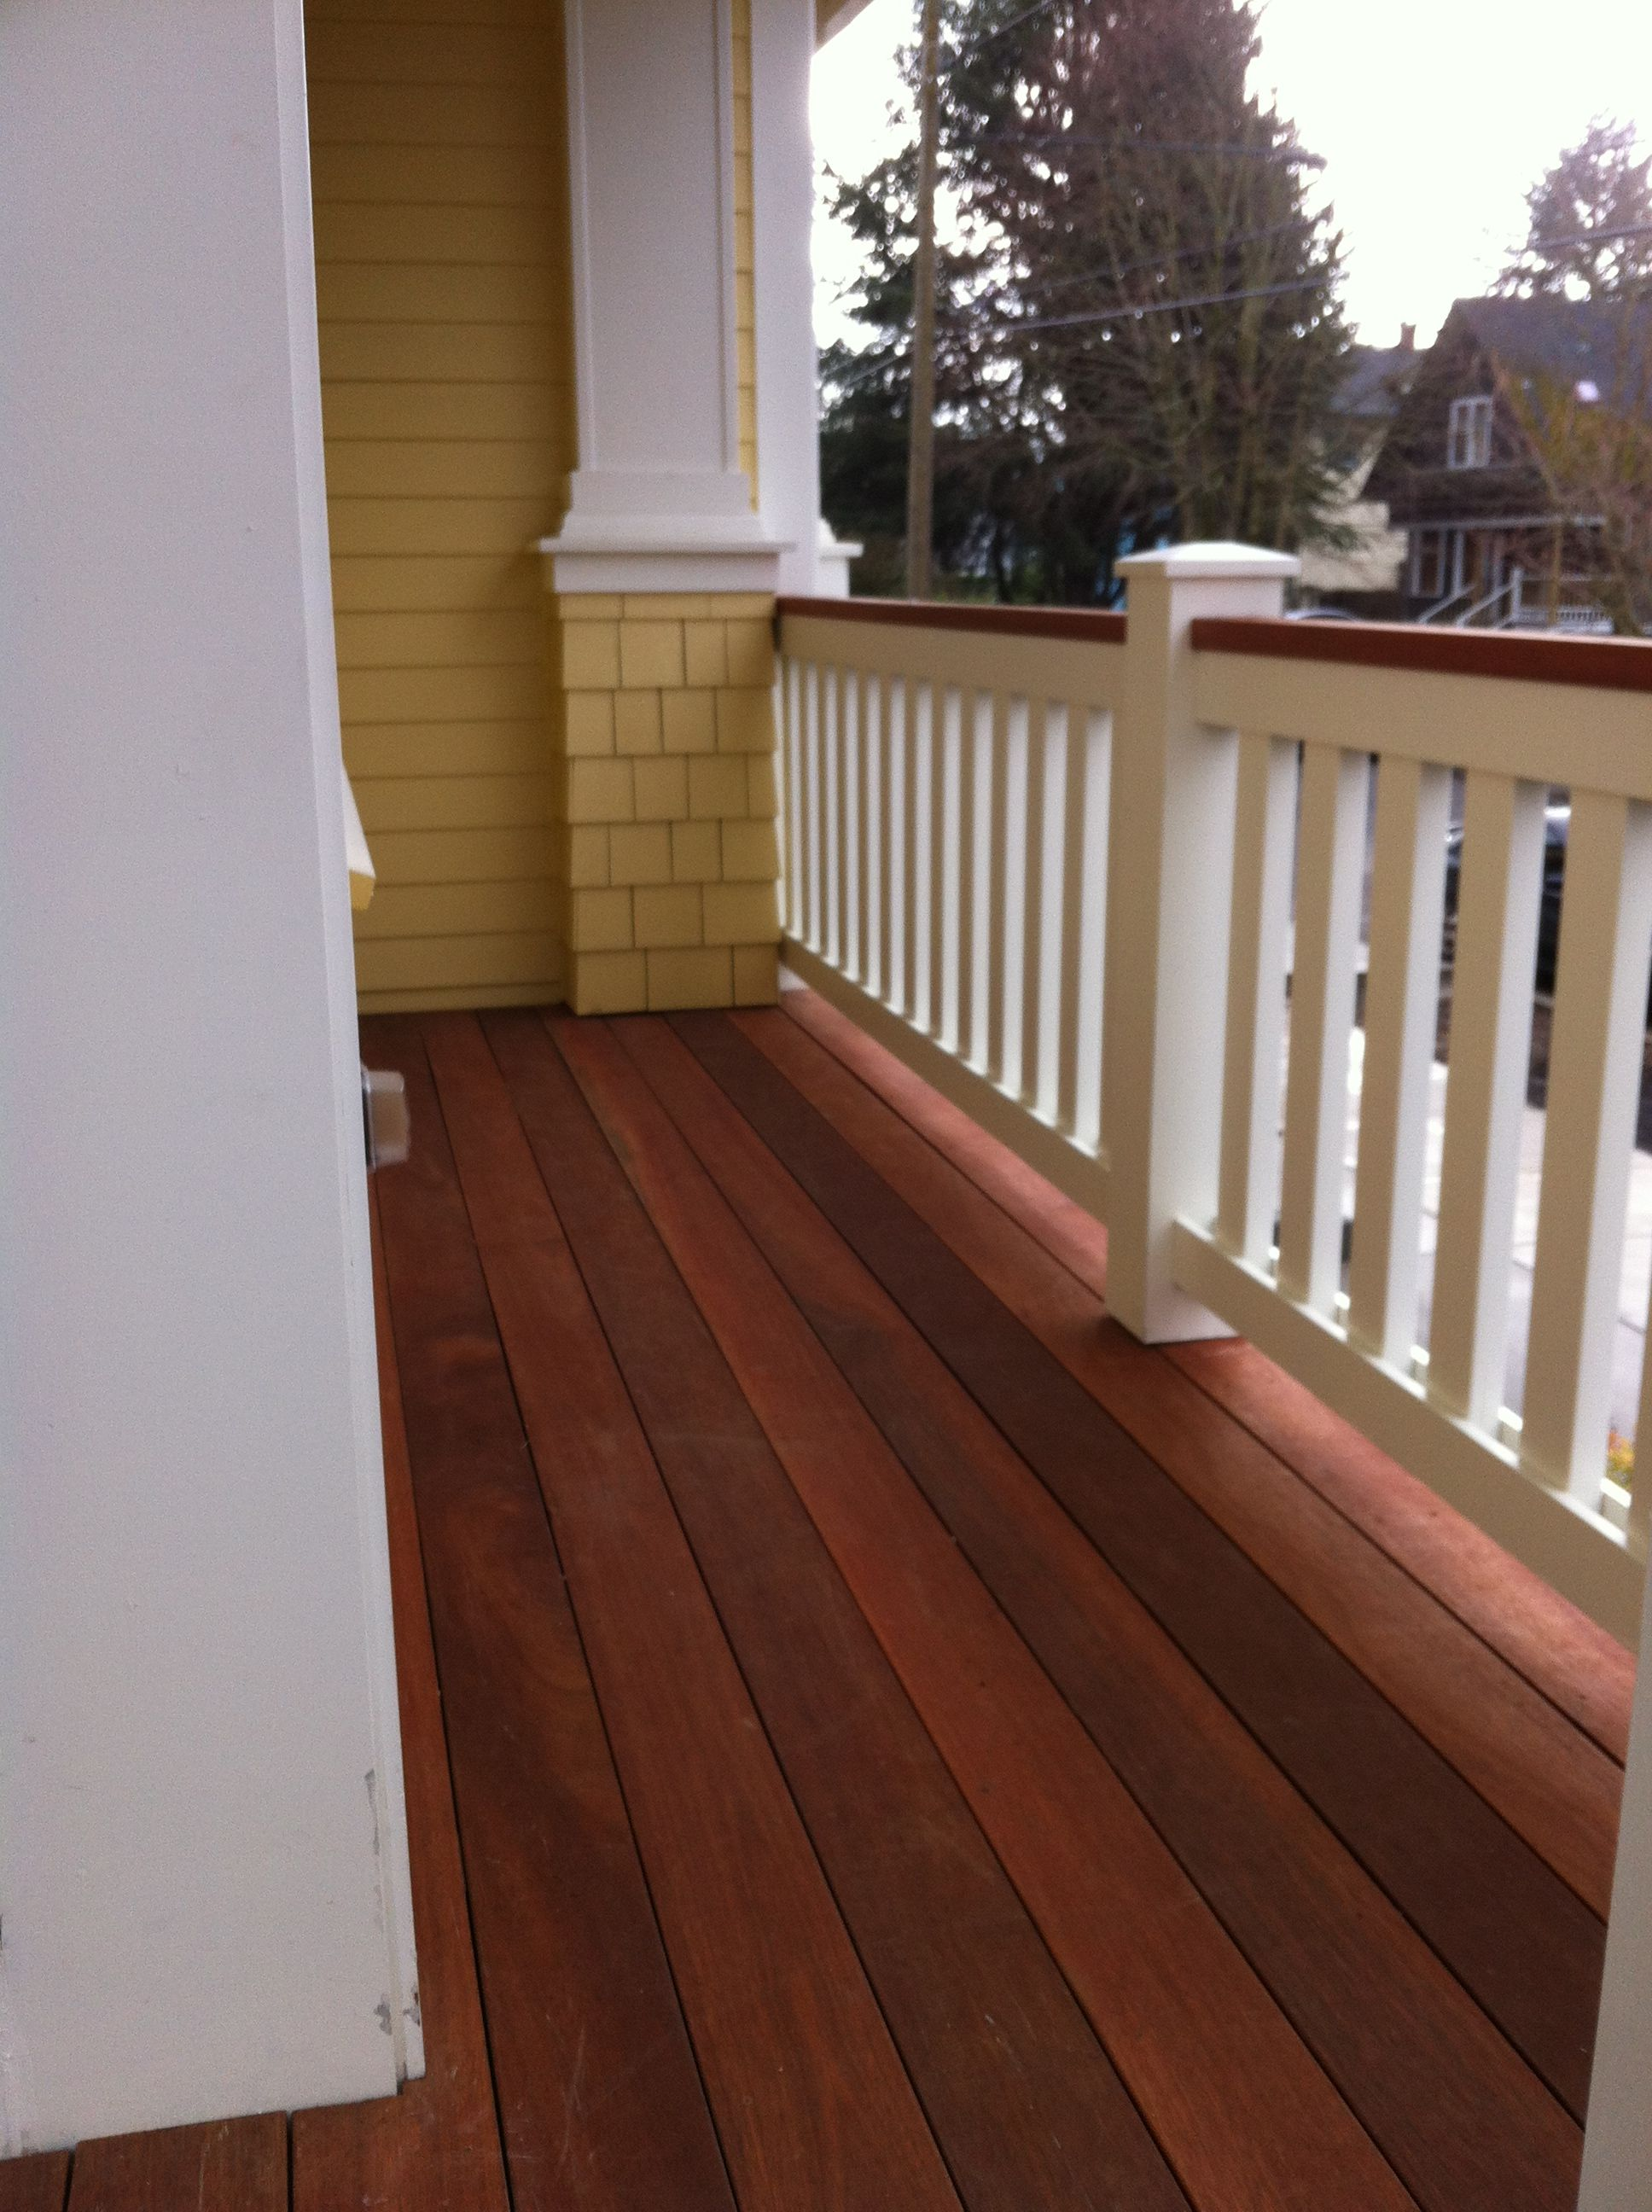 Mahogany Stained Decking And Cedar Painted Railing